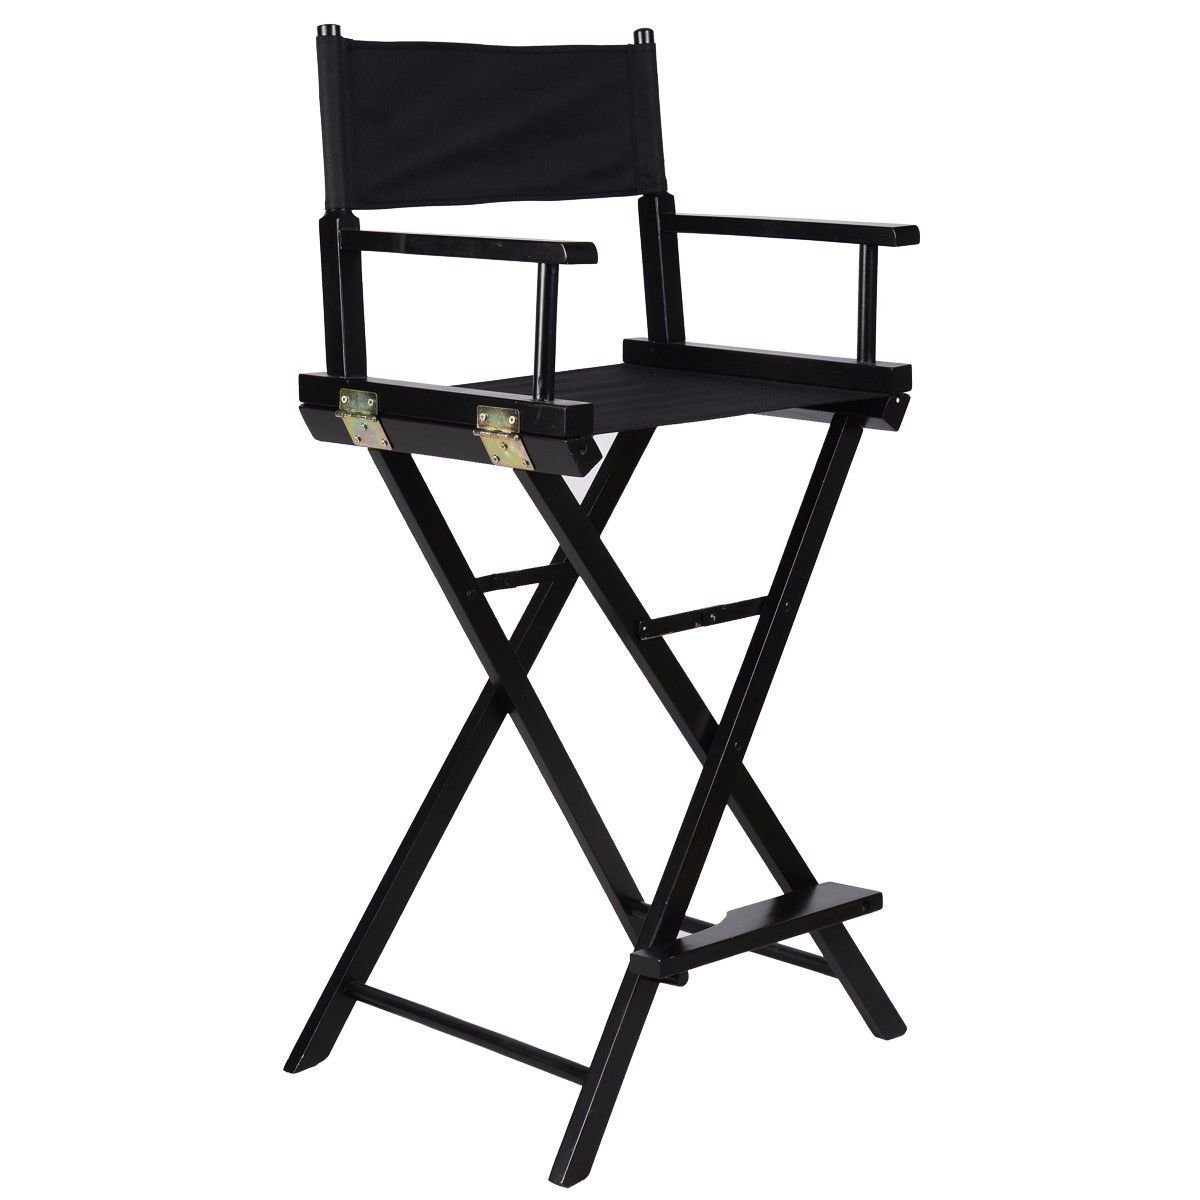 TANGKULA Directors Chair 30'' Height Lightweight Foldable Portable Black Wood Frame with Storage Bag Footrest Home Commercial Makeup Artist Chair (black)